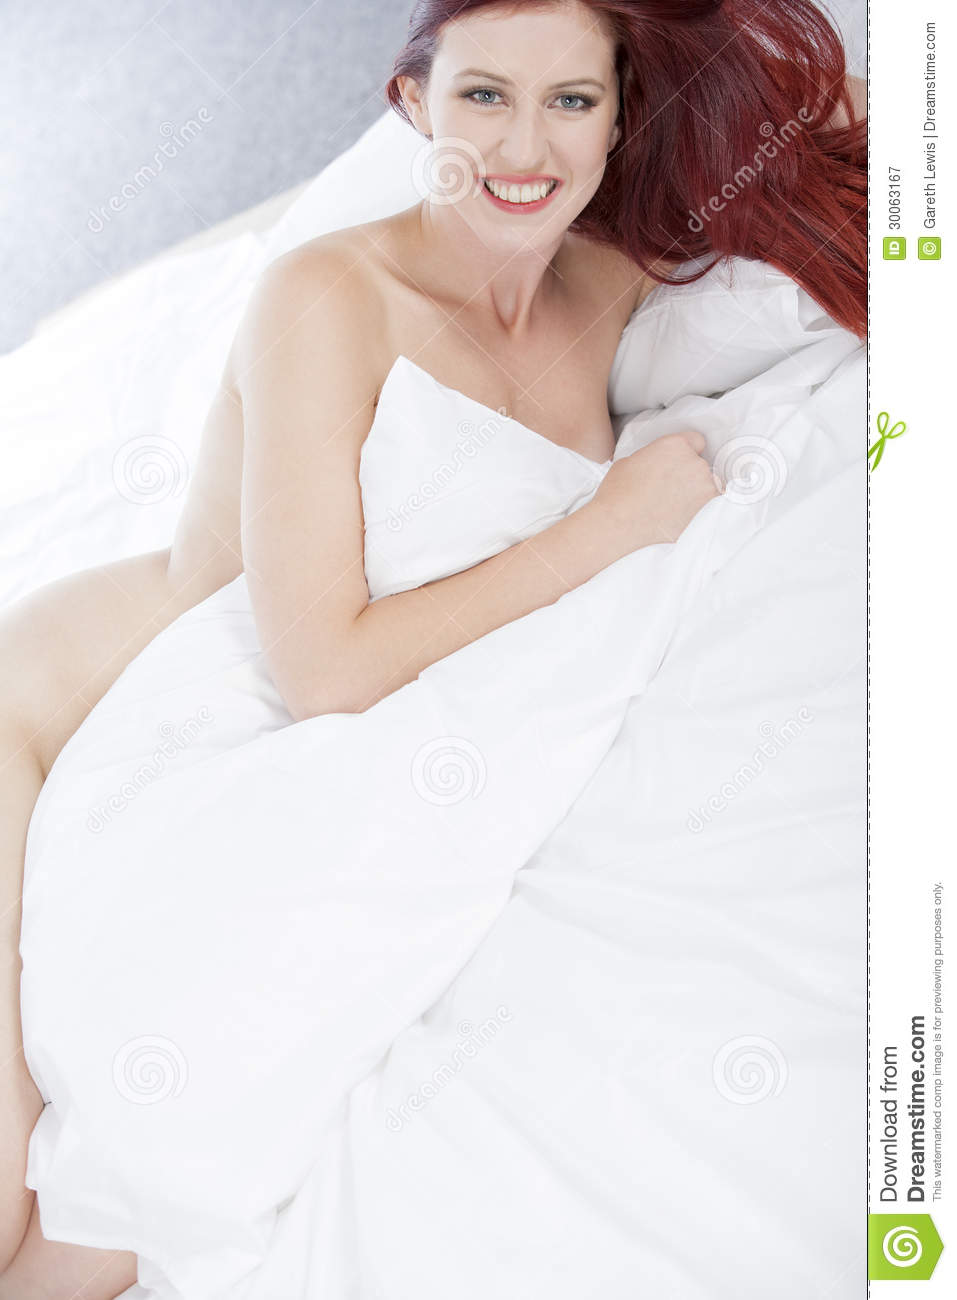 woman naked on bed stock image image of young naked 30063167. Black Bedroom Furniture Sets. Home Design Ideas